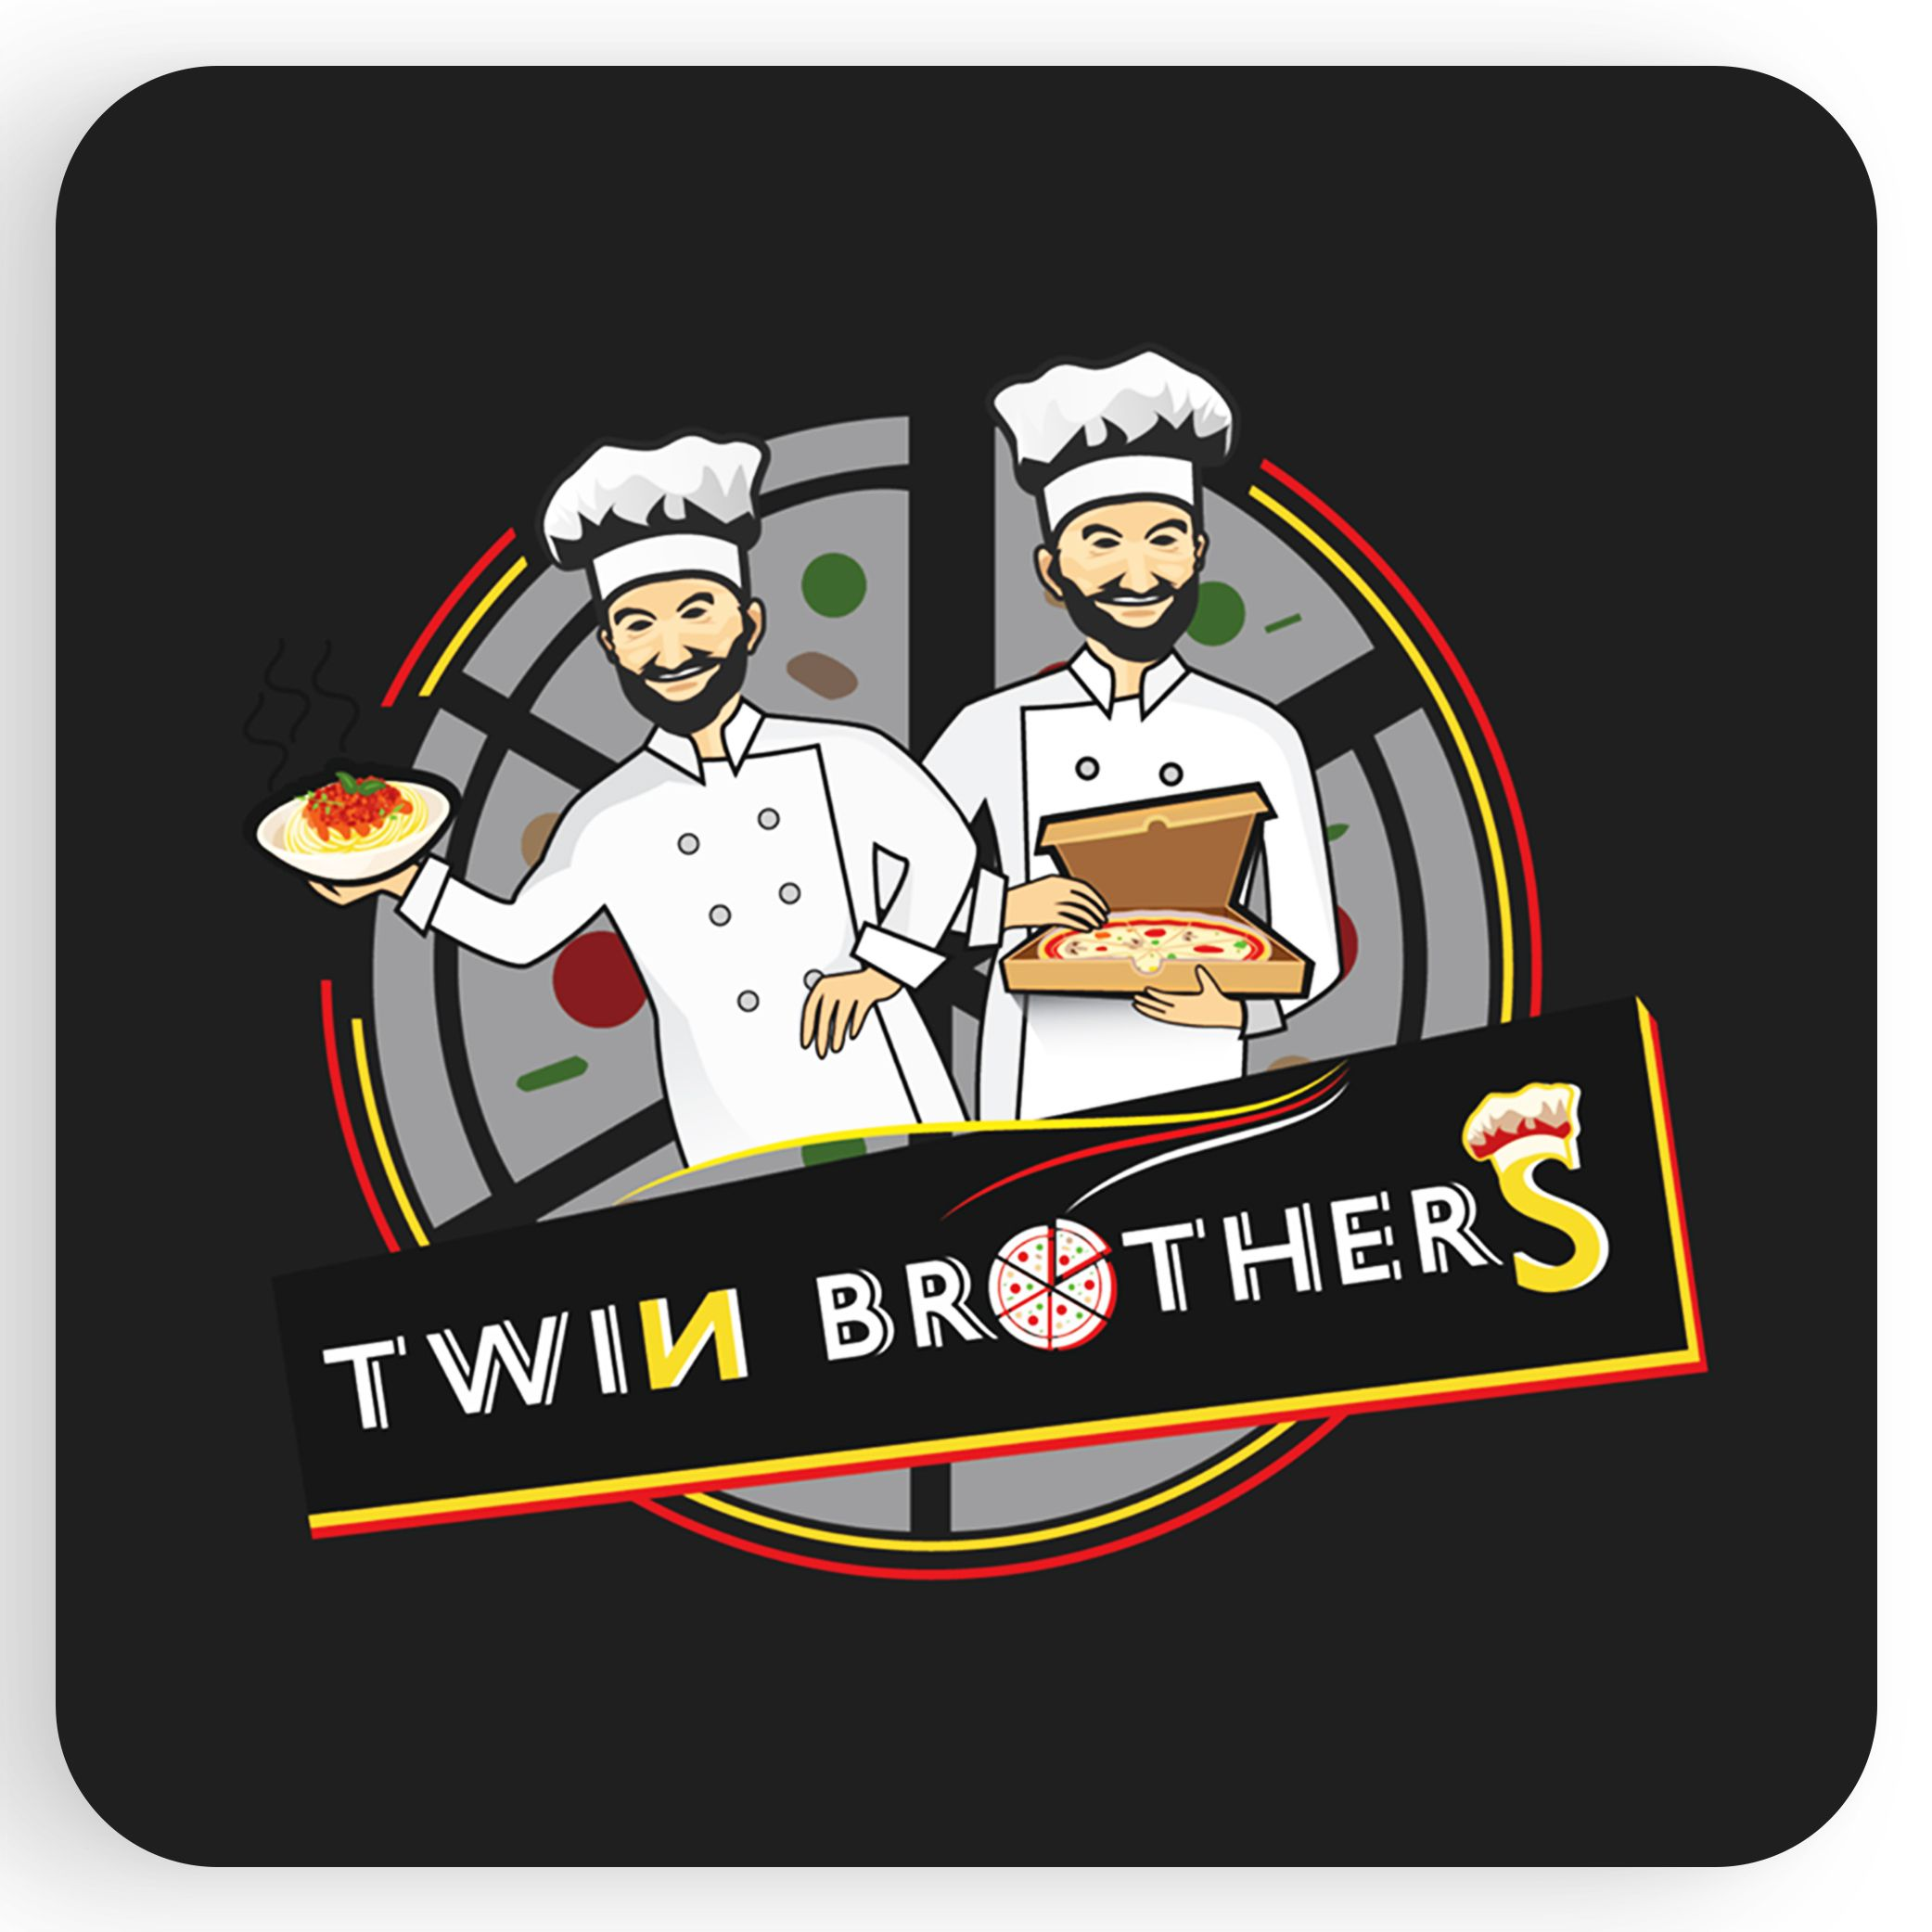 Twin Brothers - Pizza n Pasta